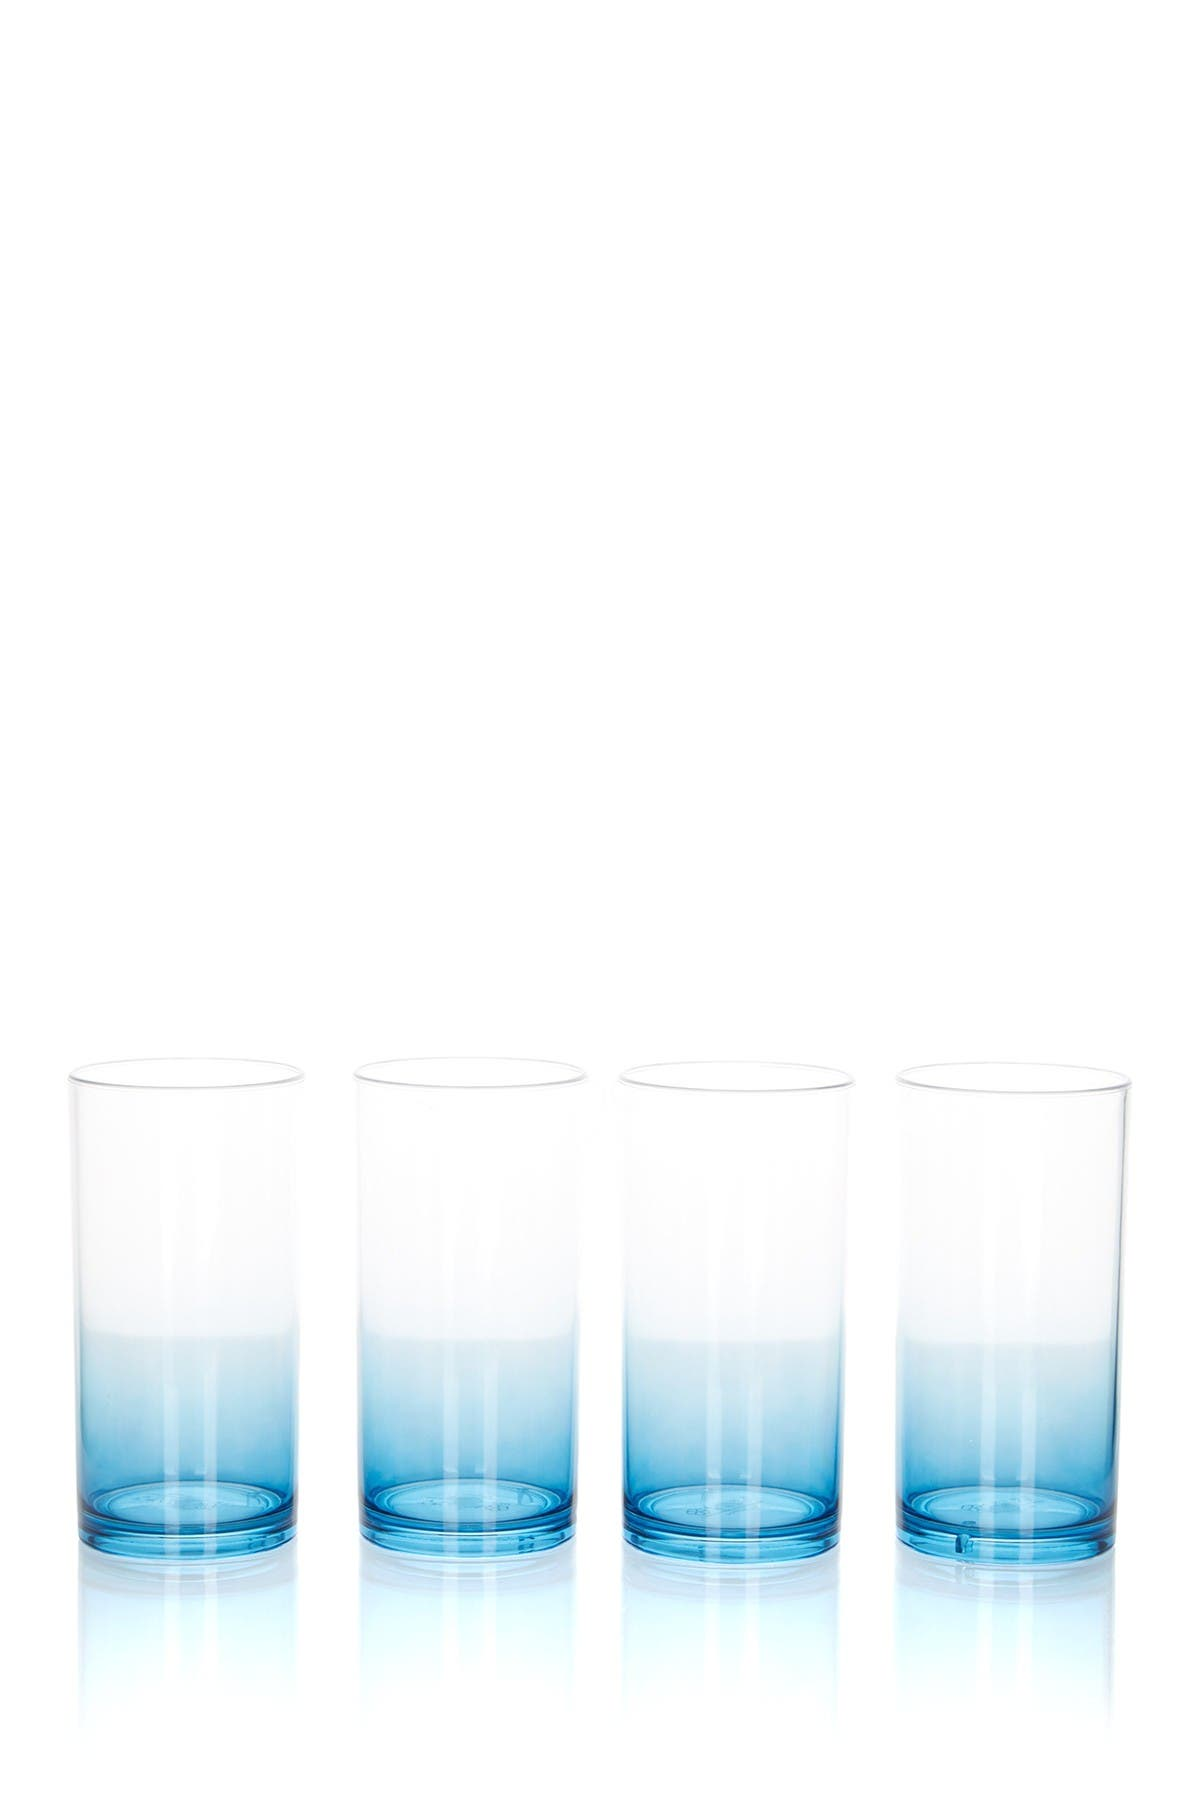 Image of Trina Turk Blue Hi Ball Glasses - Set of 4